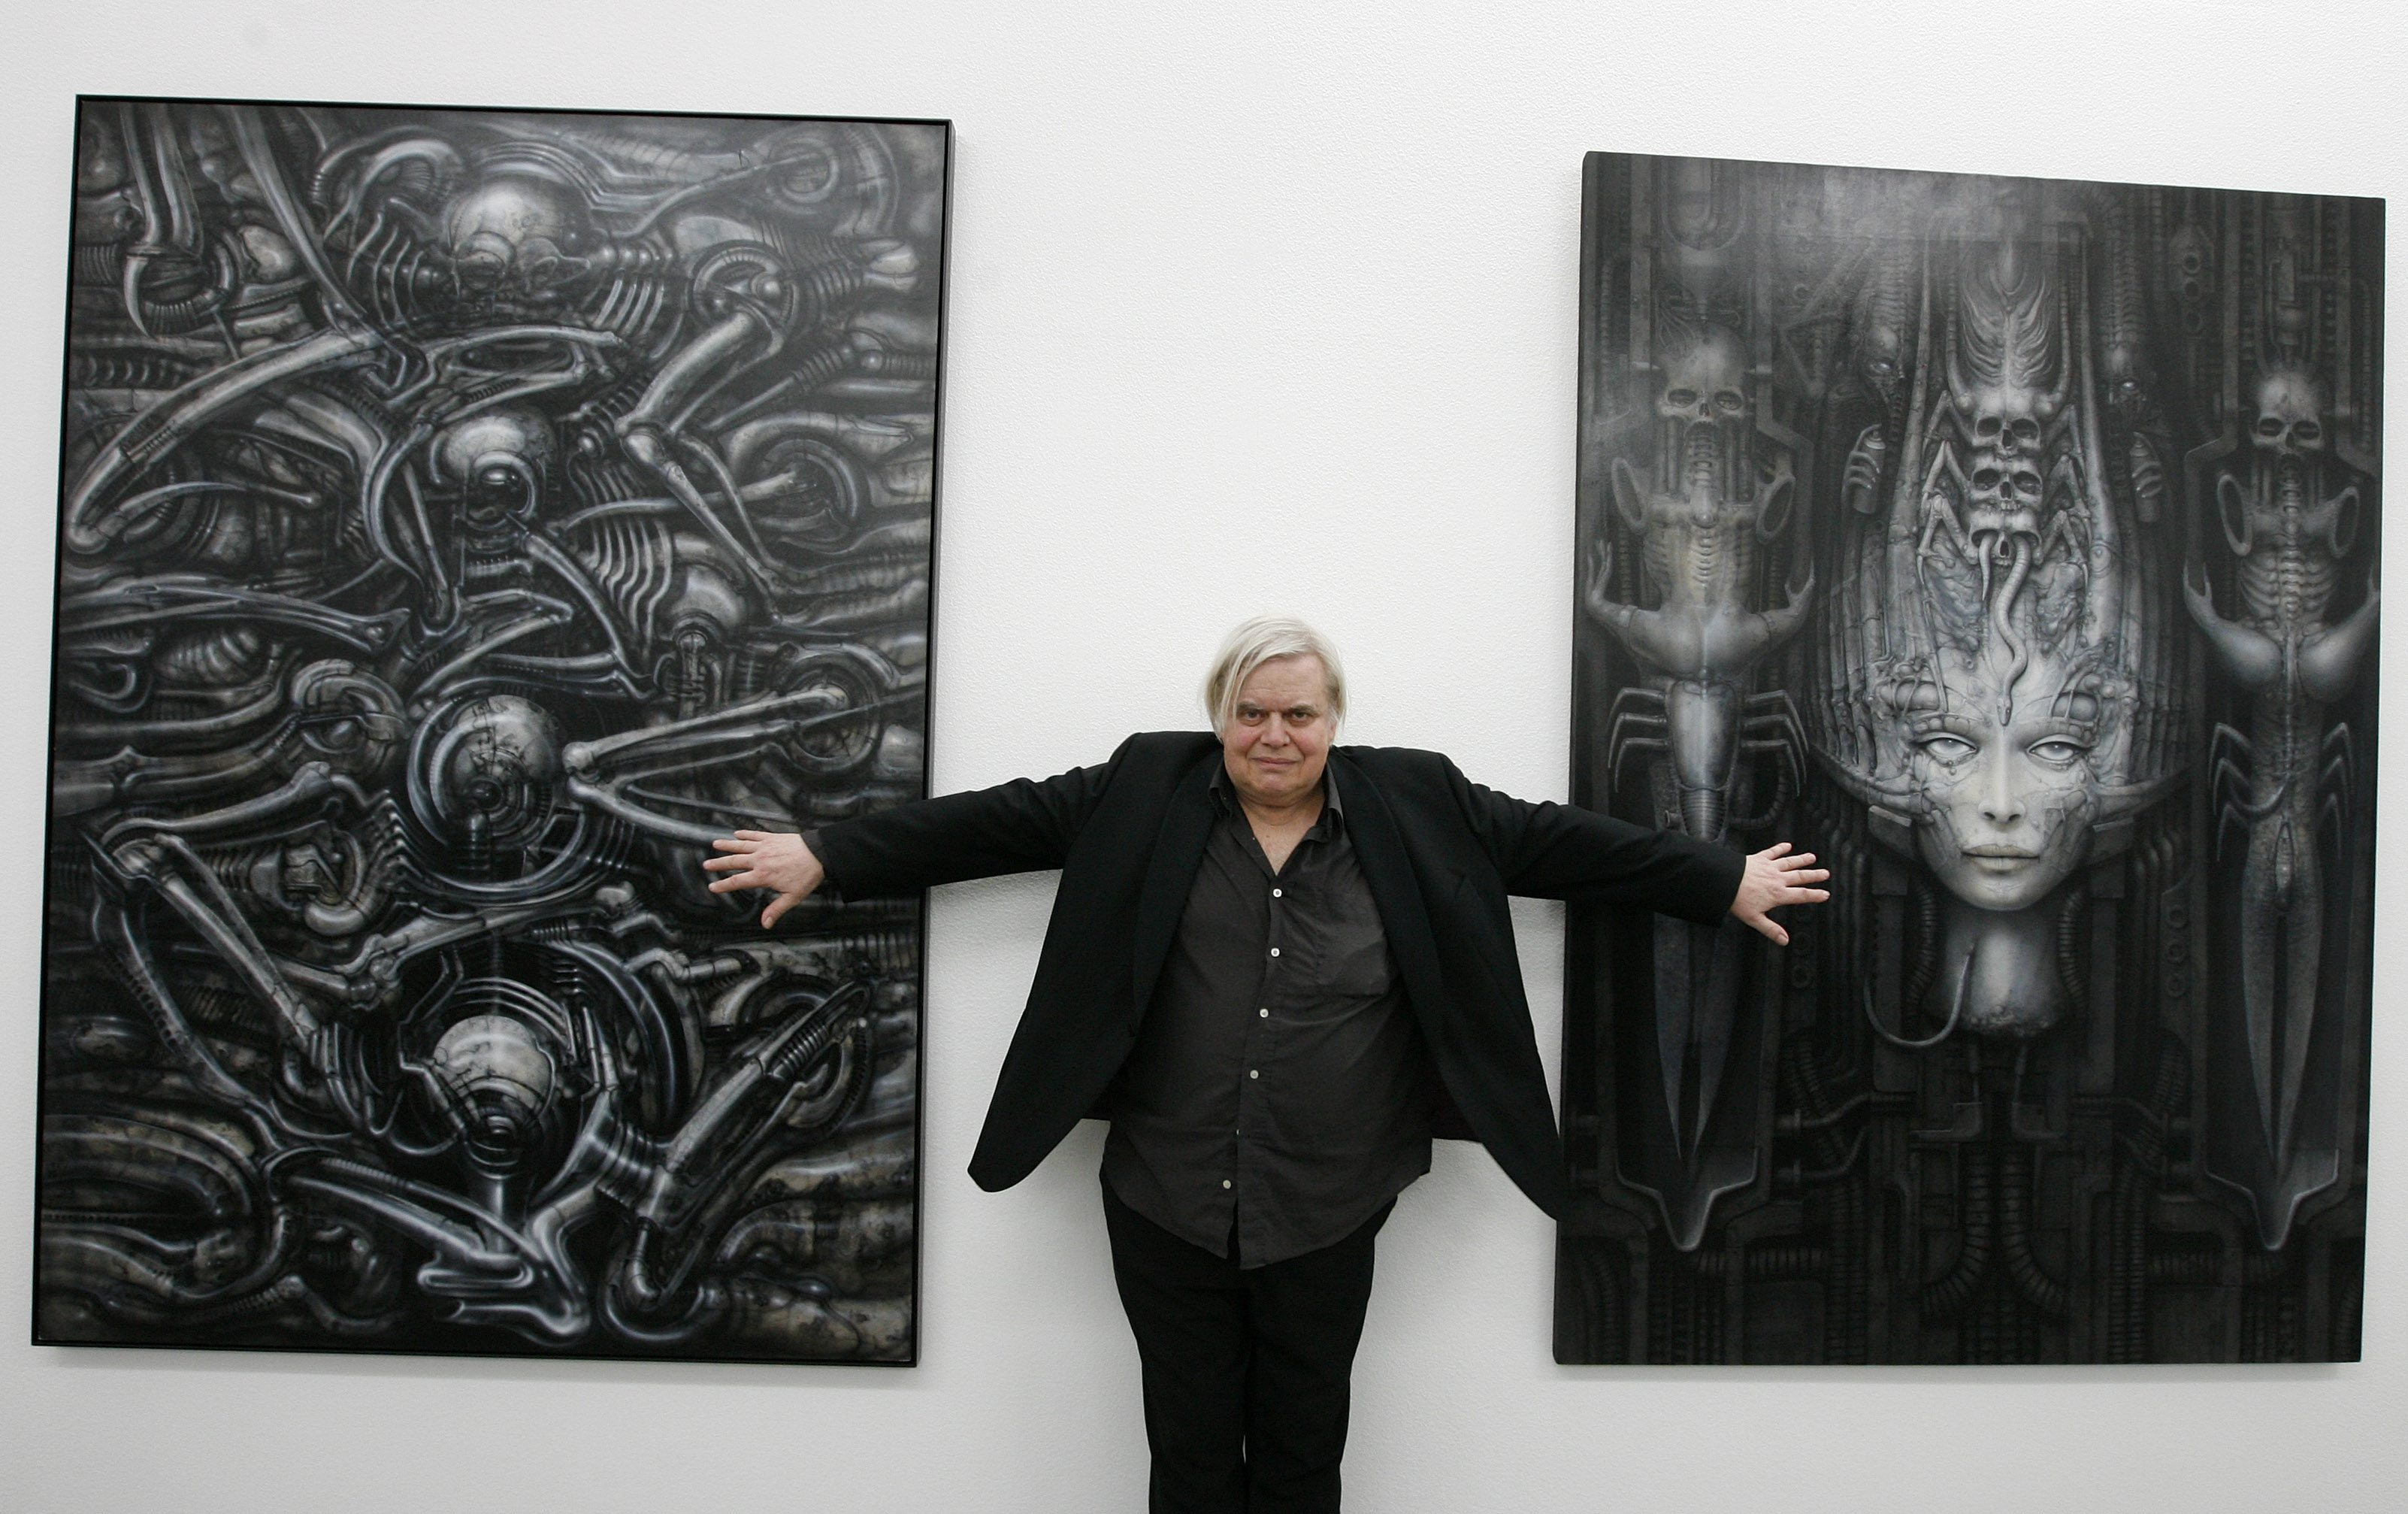 Swiss artist H.R. Giger poses with two of his works at the art museum in Chur, Switzerland.